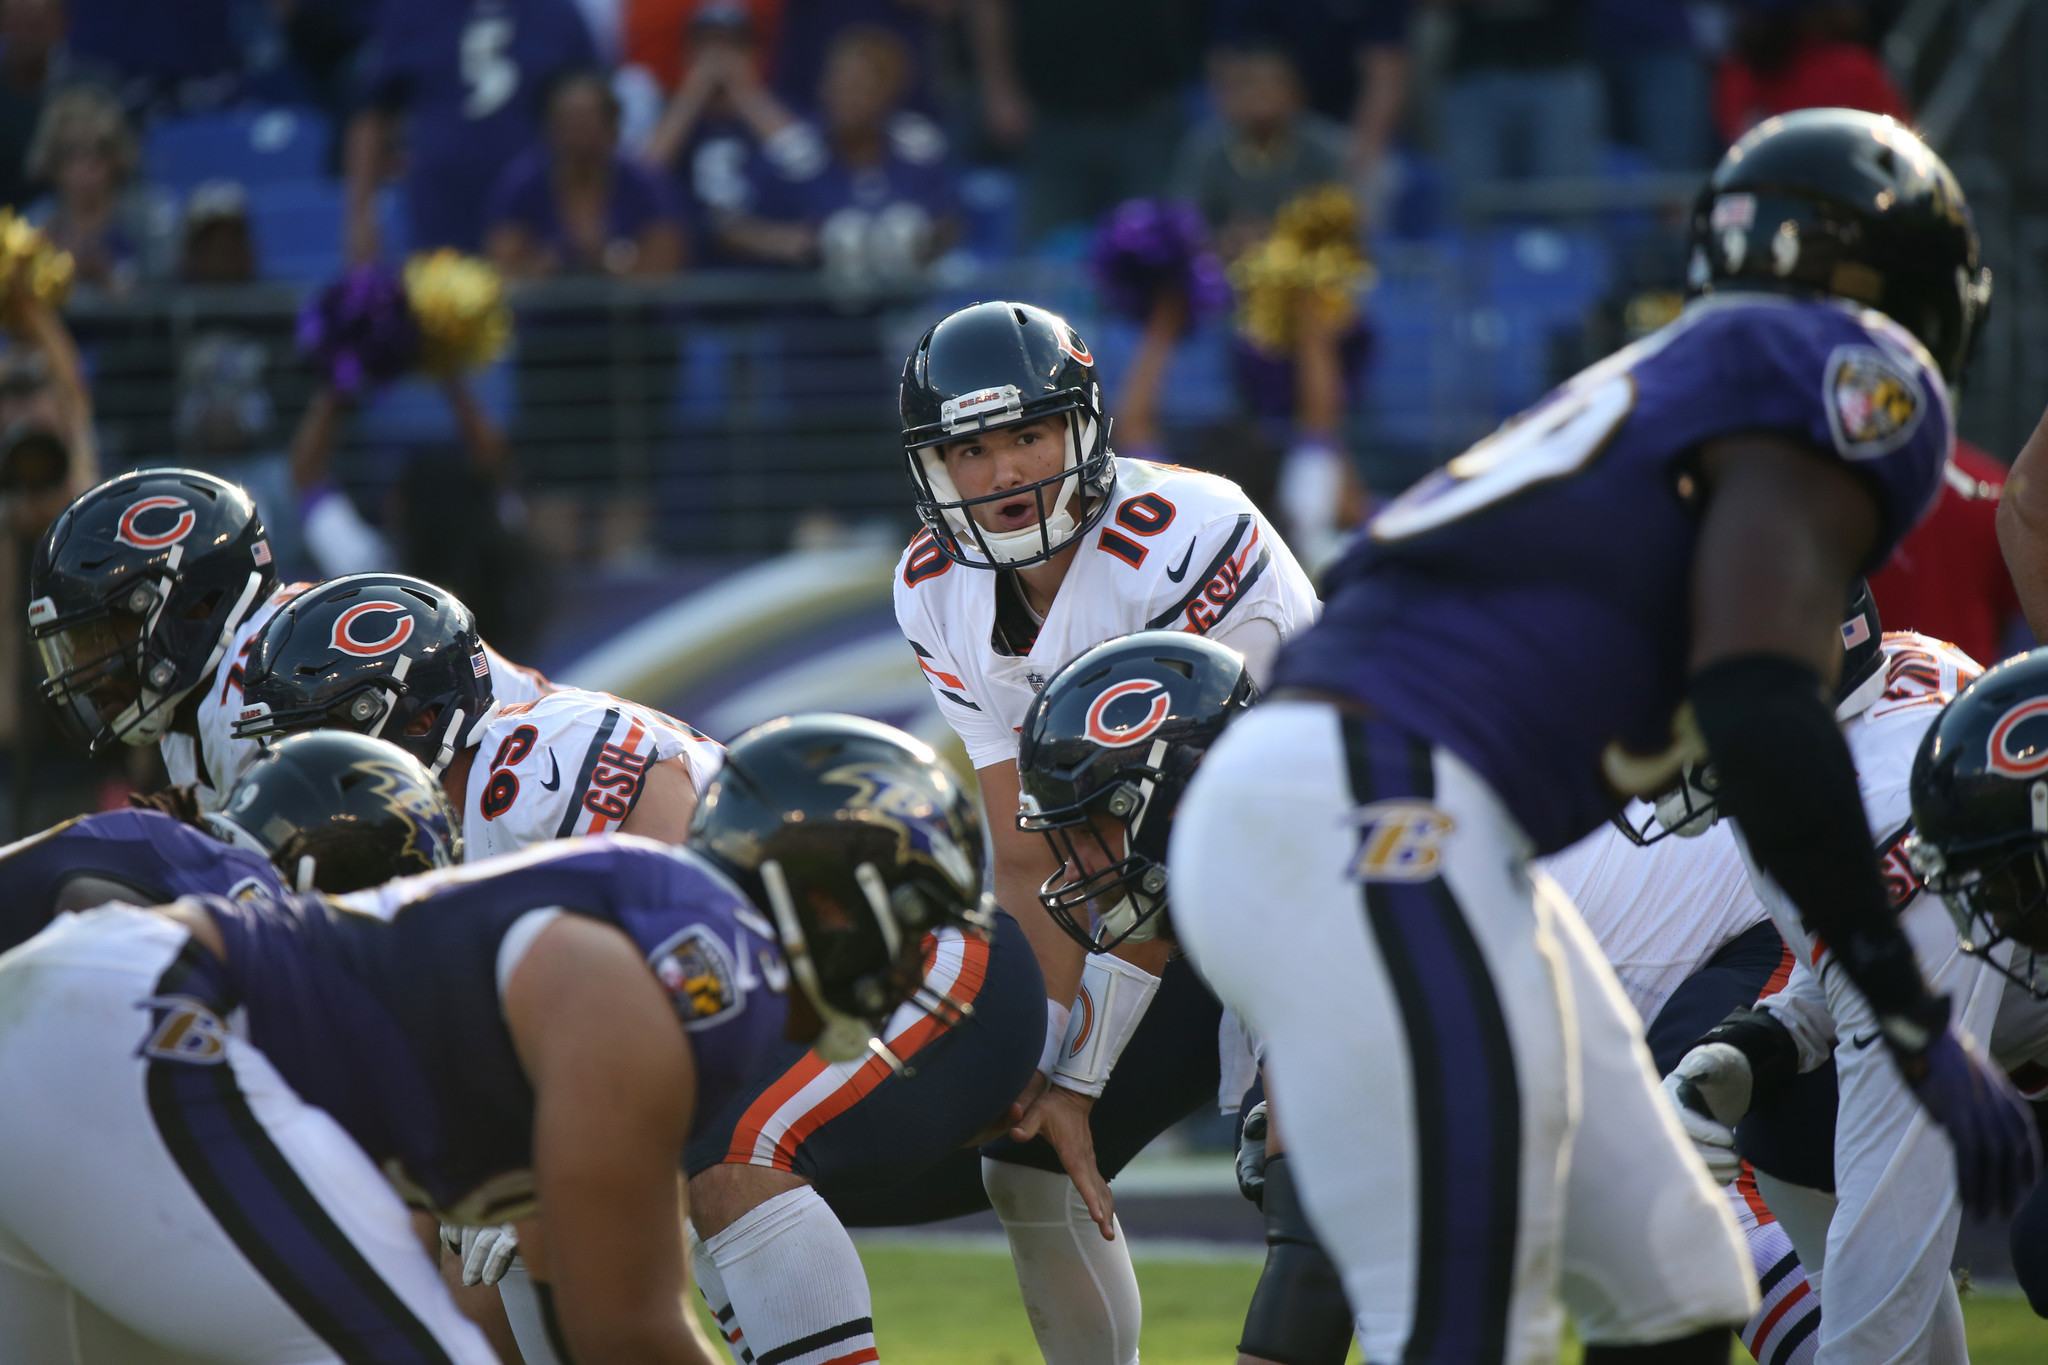 Ct-mitch-trubisky-bears-panthers-spt-1021-20171020